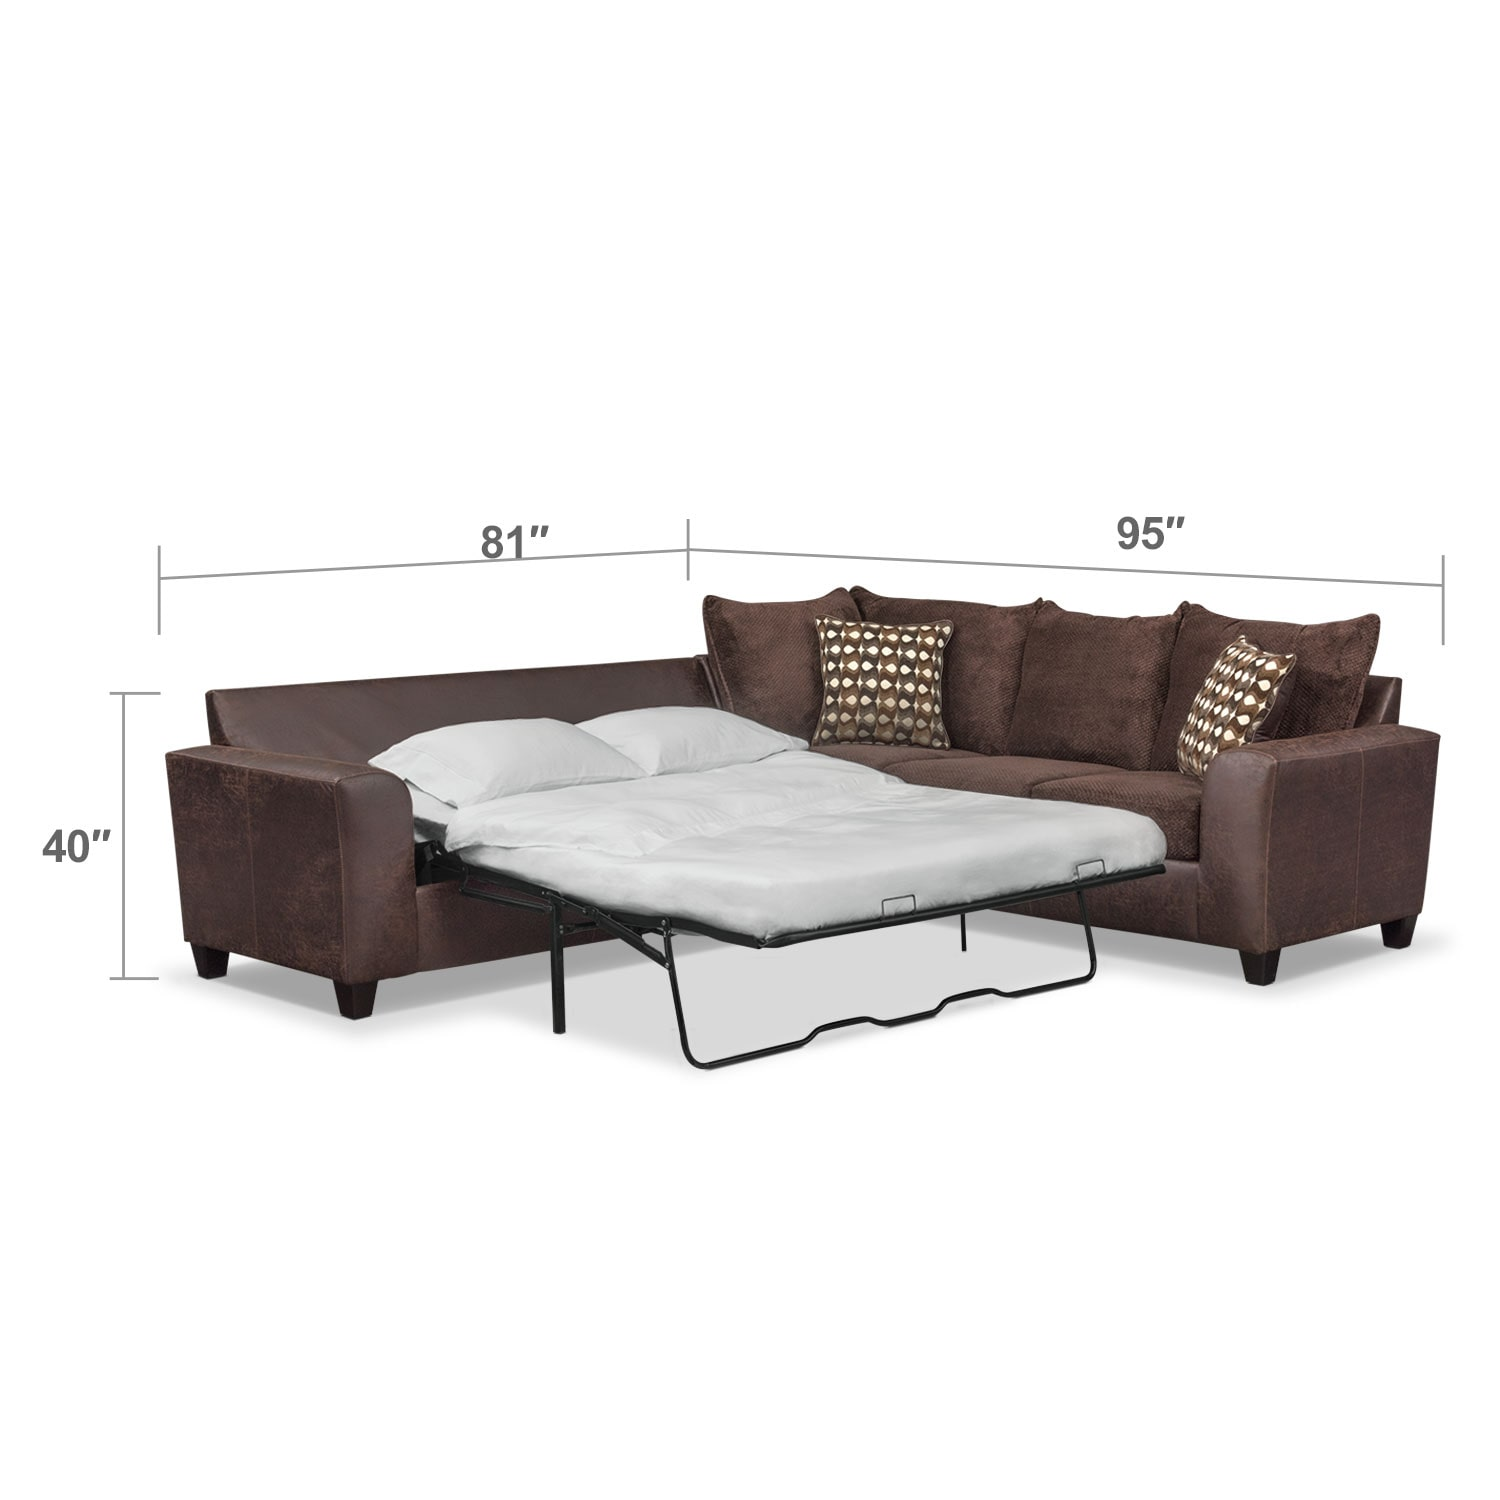 Brando 2 Piece Innerspring Sleeper Sectional Chocolate